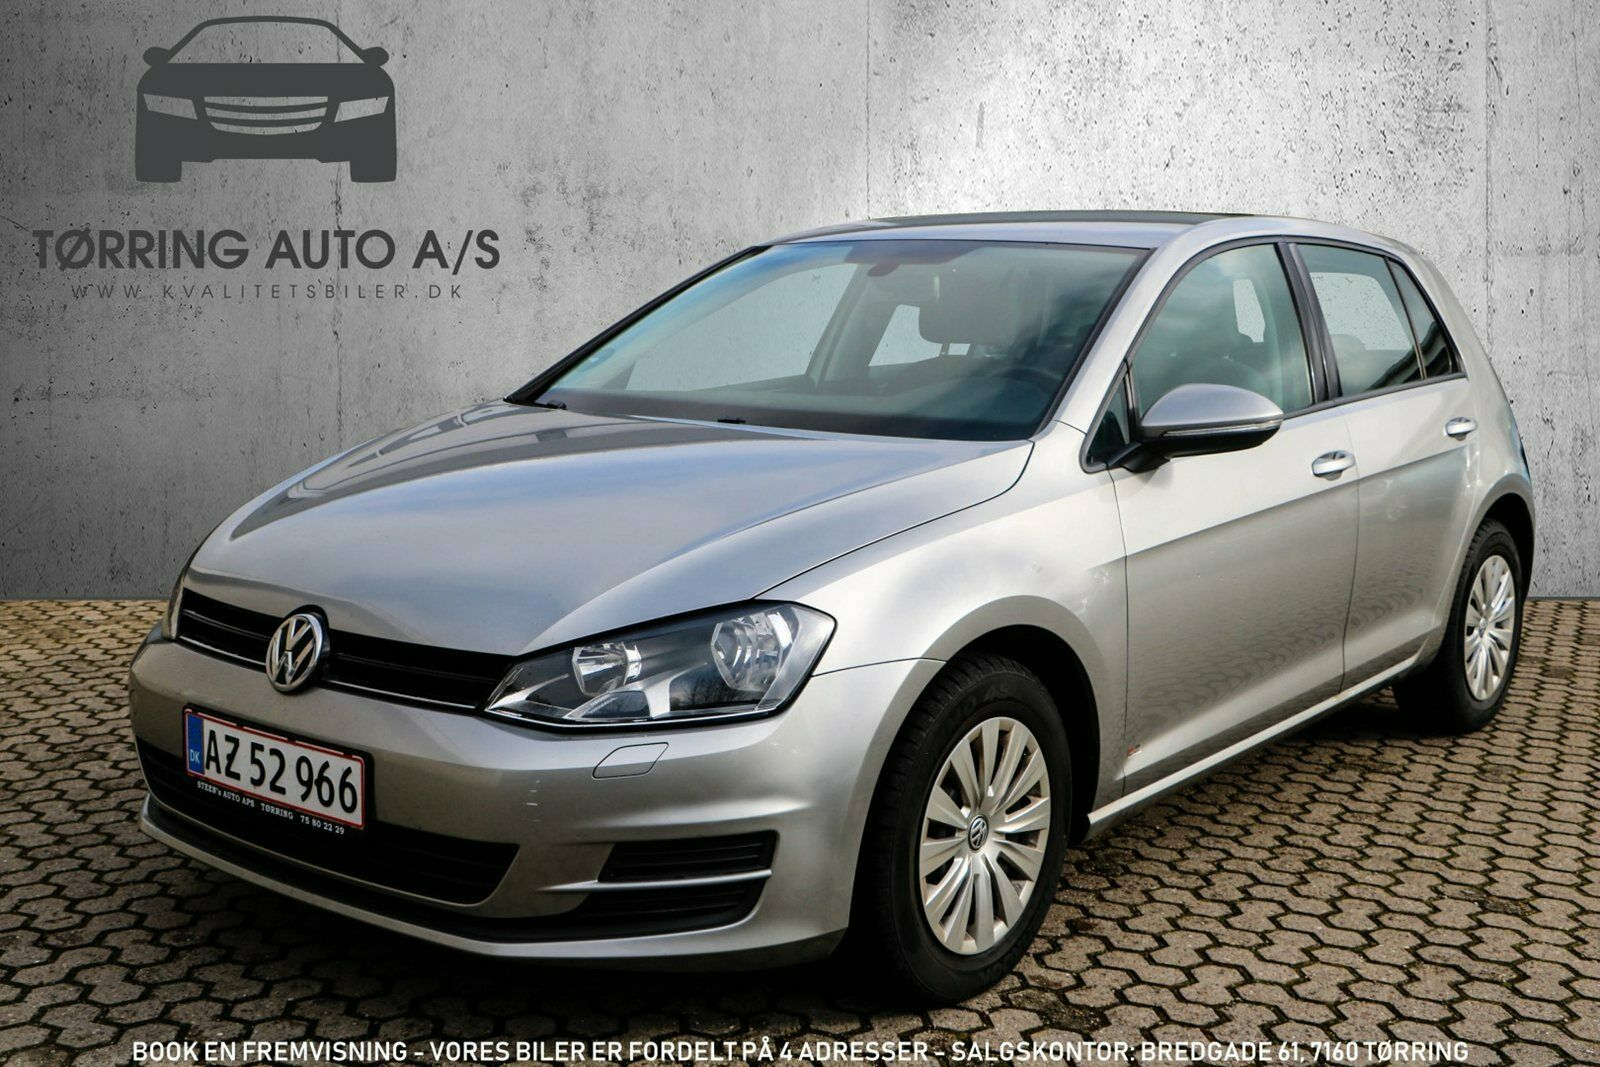 VW Golf VI 1,6 TDi 105 BlueMotion 5d - 134.900 kr.